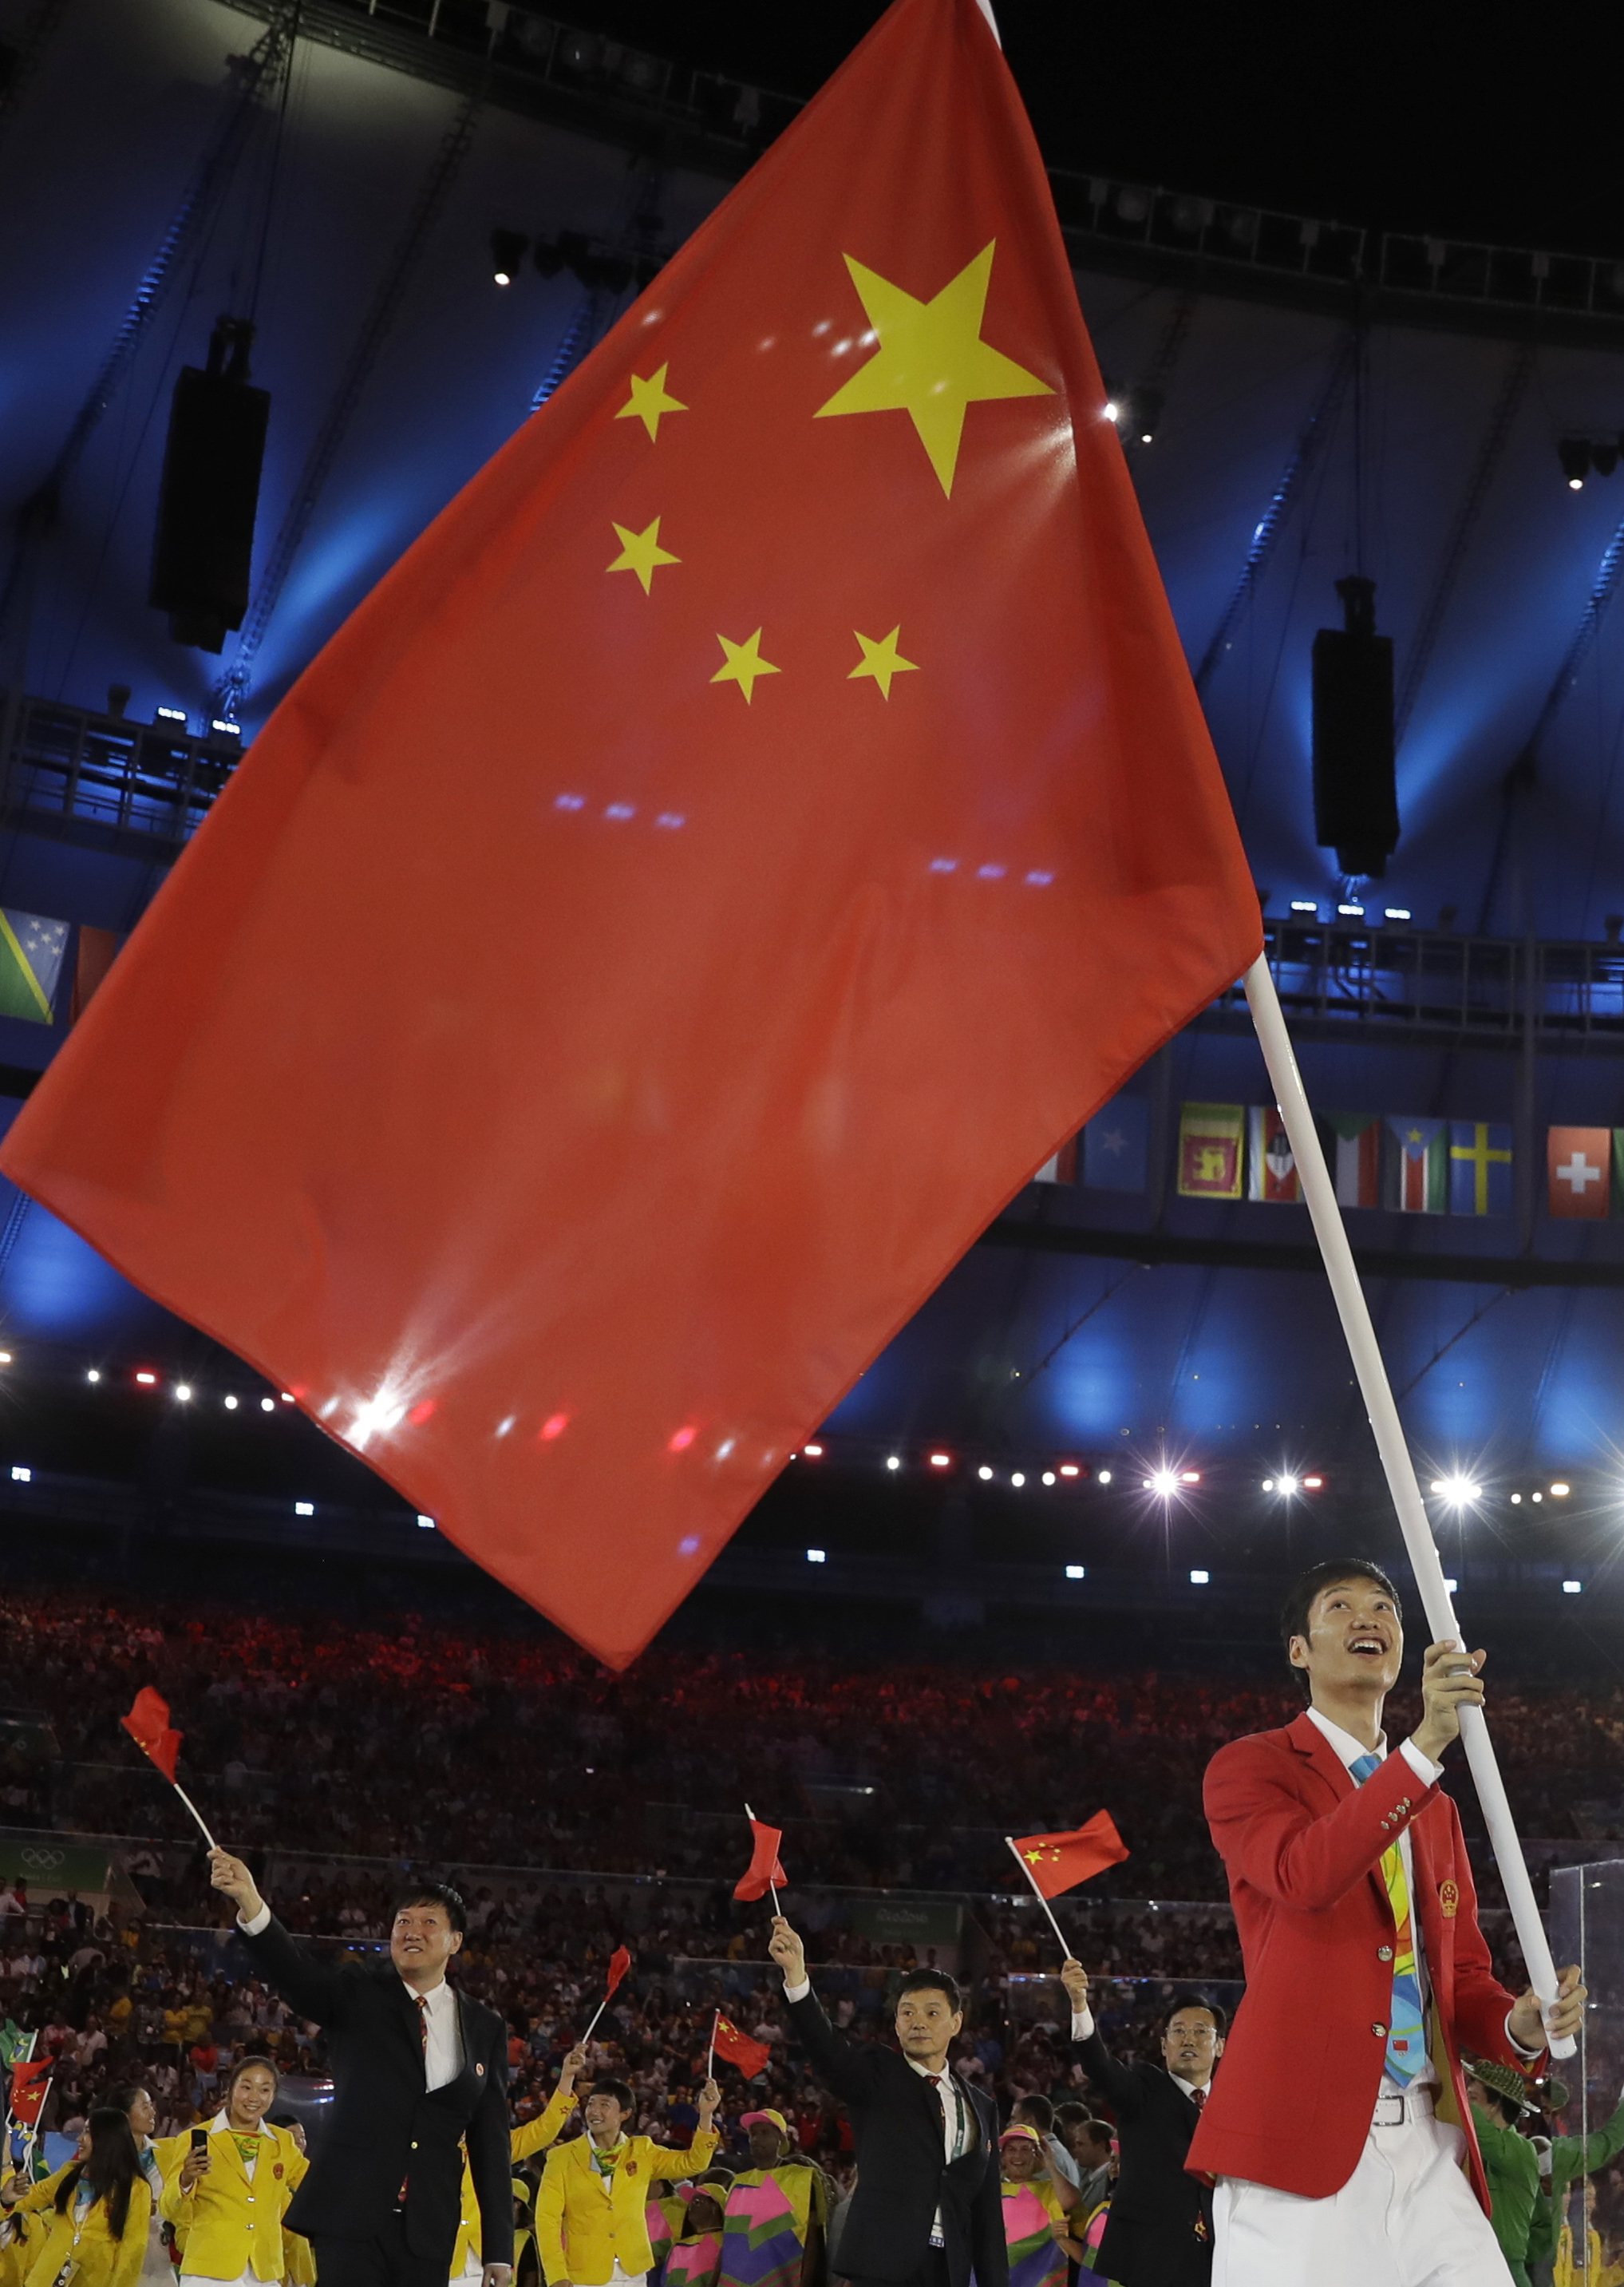 Lei Sheng carries the flag of China during the opening ceremony for the 2016 Summer Olympics in Rio de Janeiro, Brazil, Friday, Aug. 5, 2016. (AP Photo/David J. Phillip)